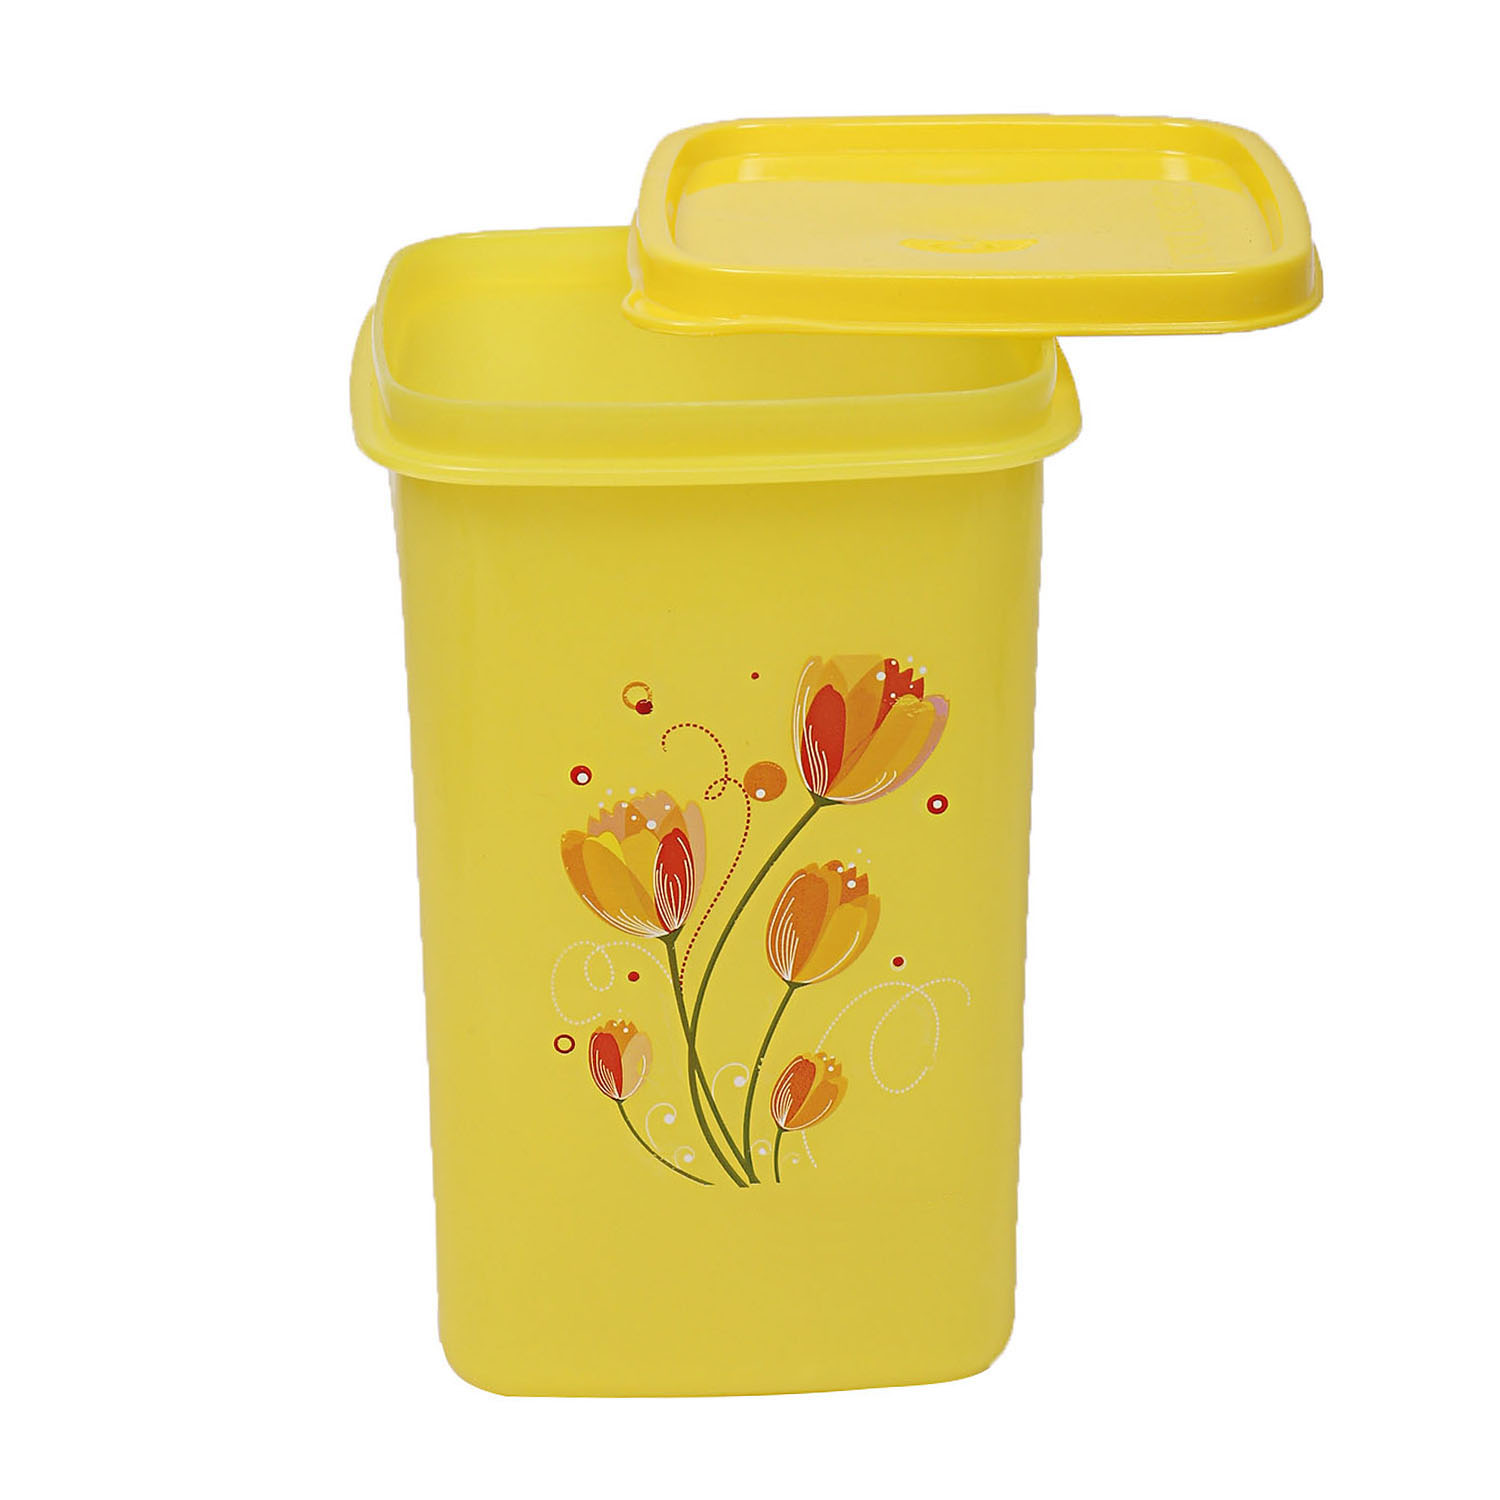 Kuber Industries Plastic 12 Pieces Multipurpose Storage Container Set 1000ml (Purple, Pink, Yellow & Red) - CTKTC23406